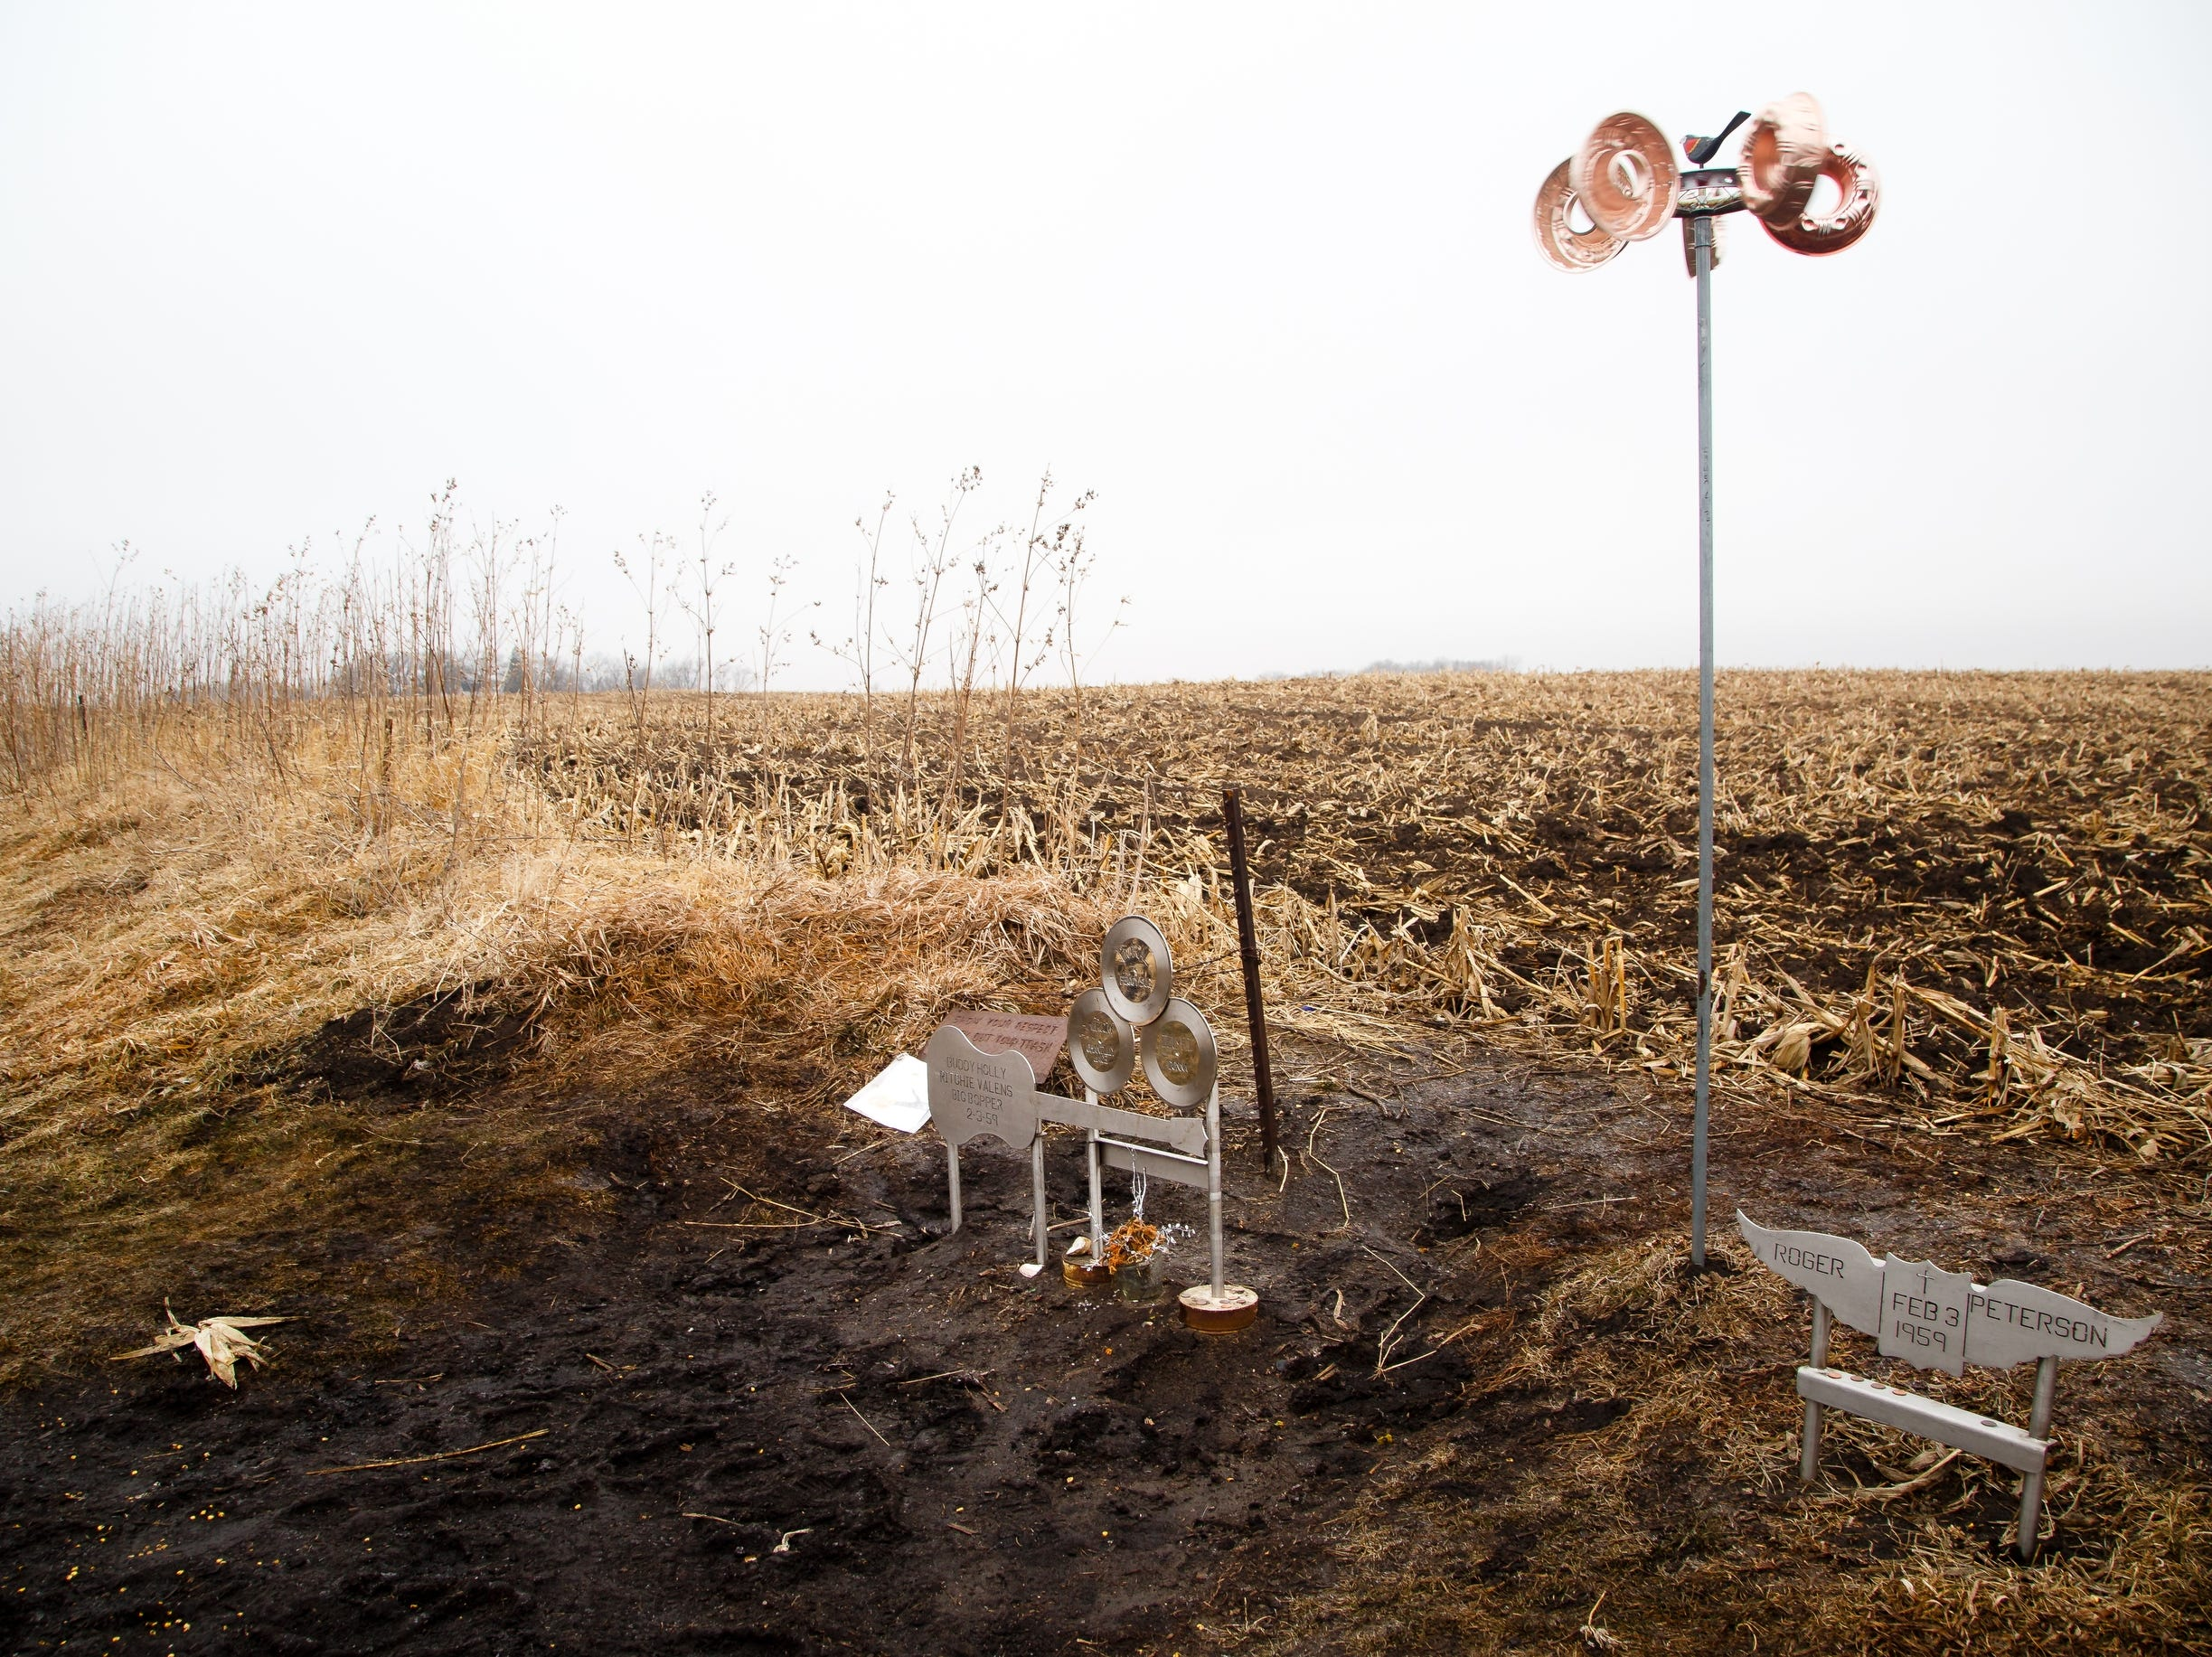 "A memorial to Buddy Holly, Ritchie Valens, and J.P. ""the Big Bopper"" Richardson sits in the field on Tuesday, Jan. 15, 2019, in Clear Lake where their plane crashed on February 3, 1959 after their concert at the Surf Ballroom during the Winter Dance Party tour."